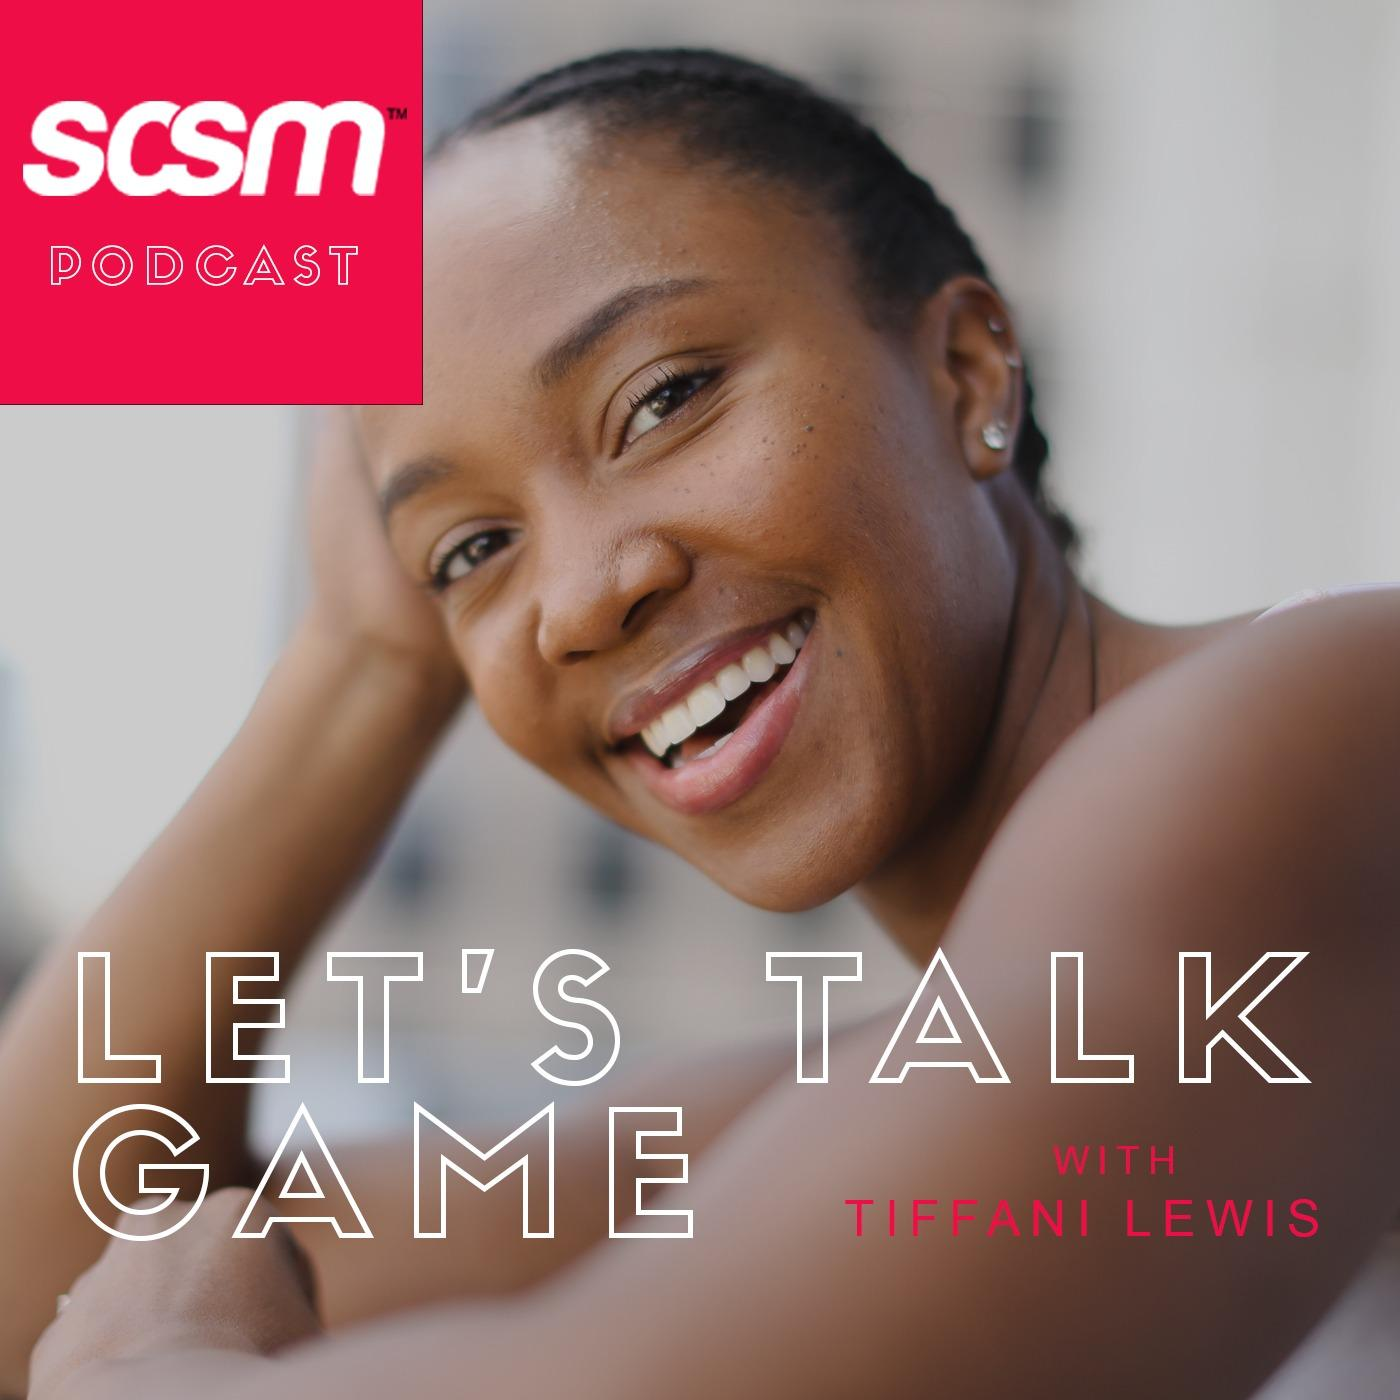 Let's Talk Game with Tiffani Lewis